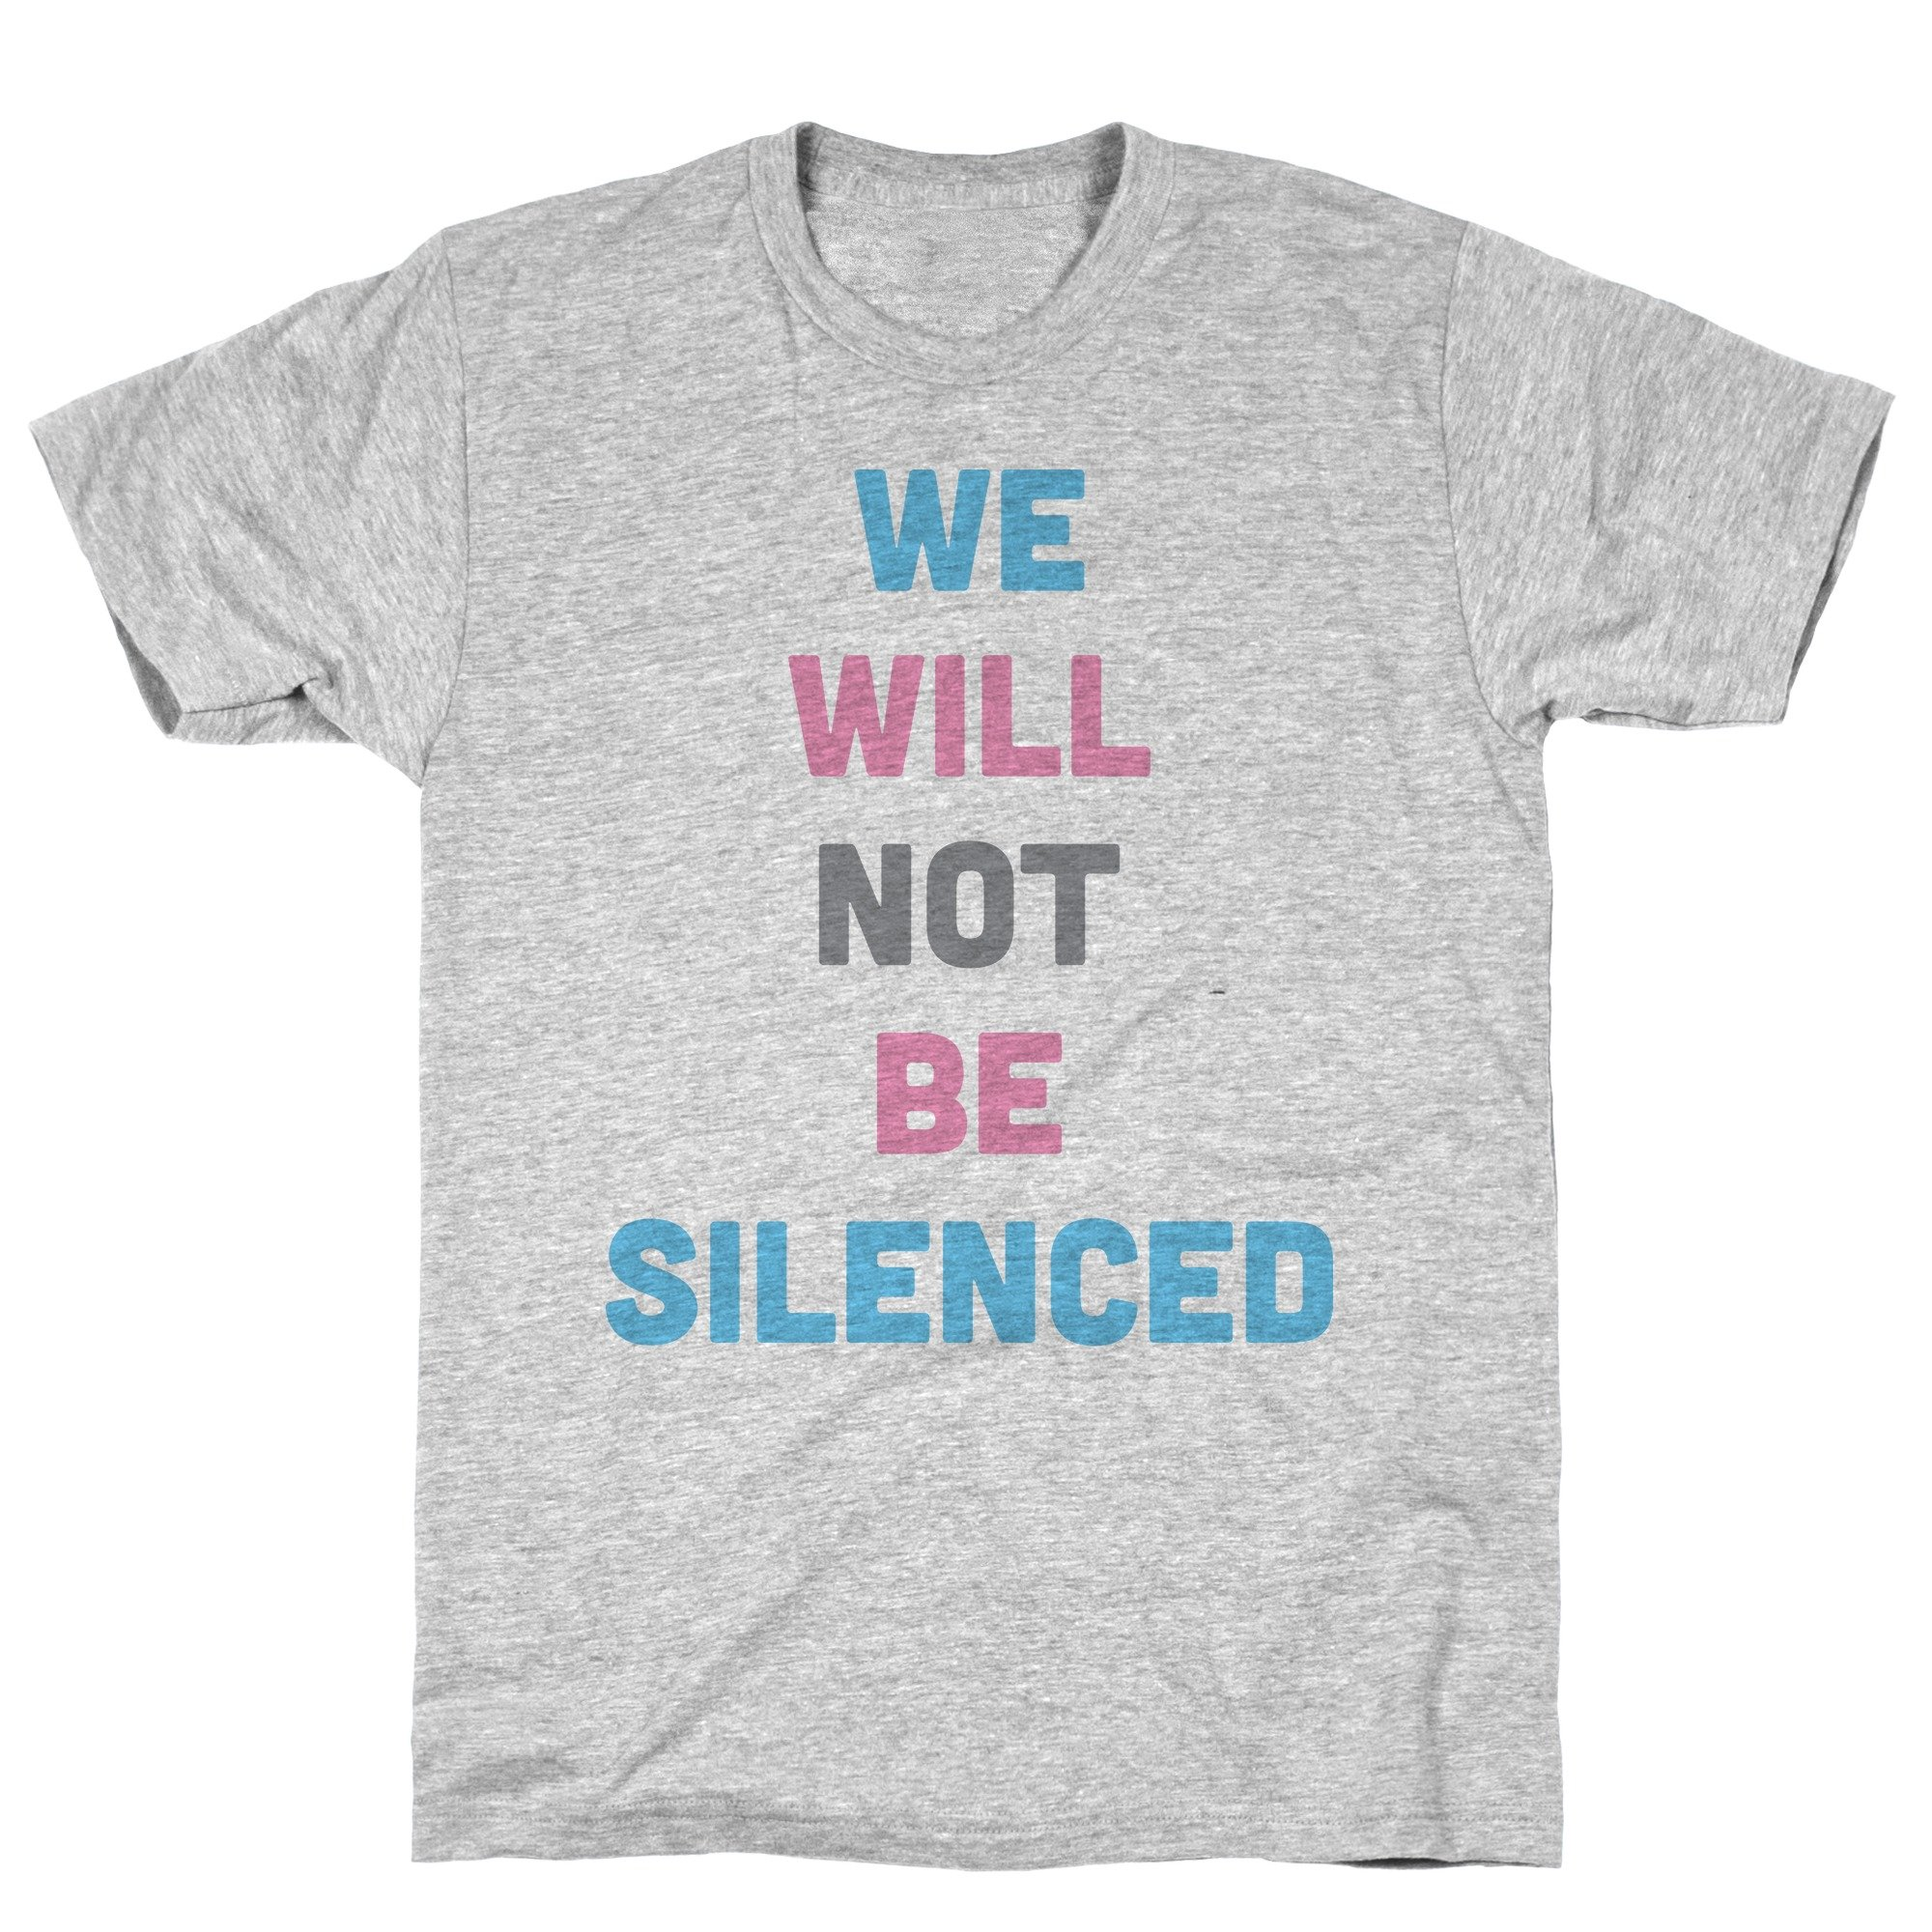 We Will Not Be Silenced Transgender Athletic Gray Tee 3948 Shirts